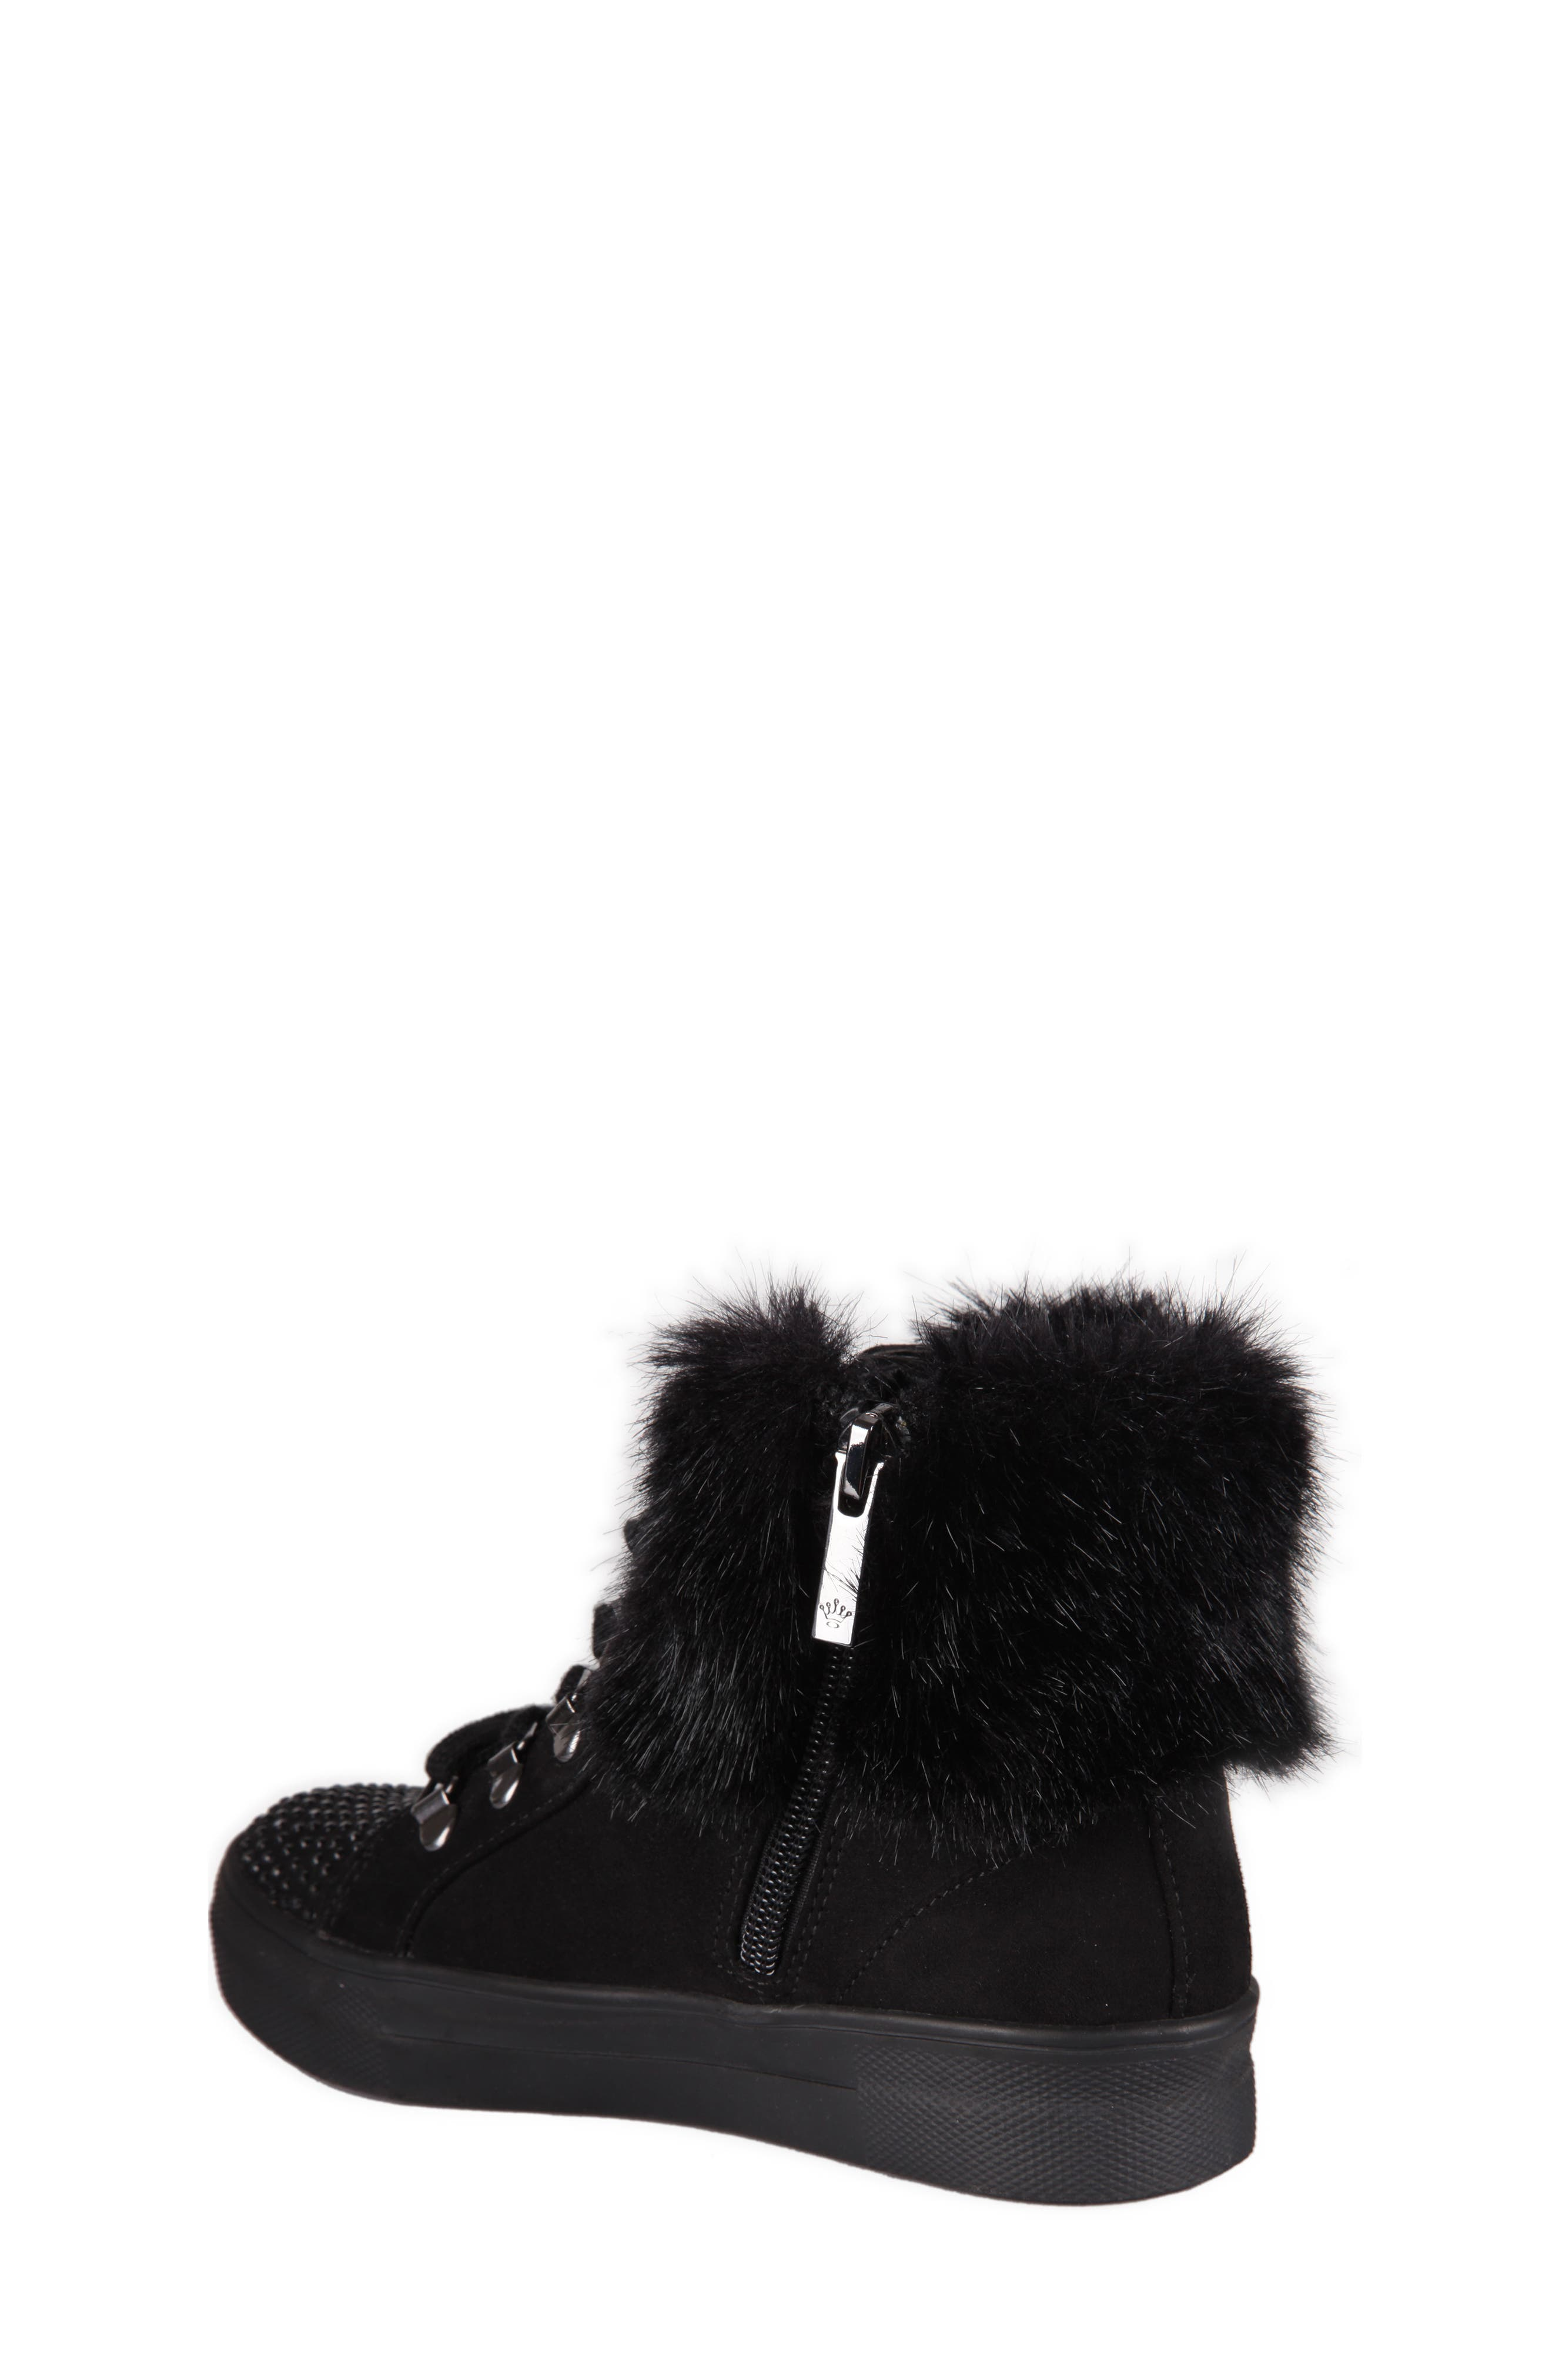 Randi Studded Faux Fur High Top,                             Alternate thumbnail 2, color,                             007